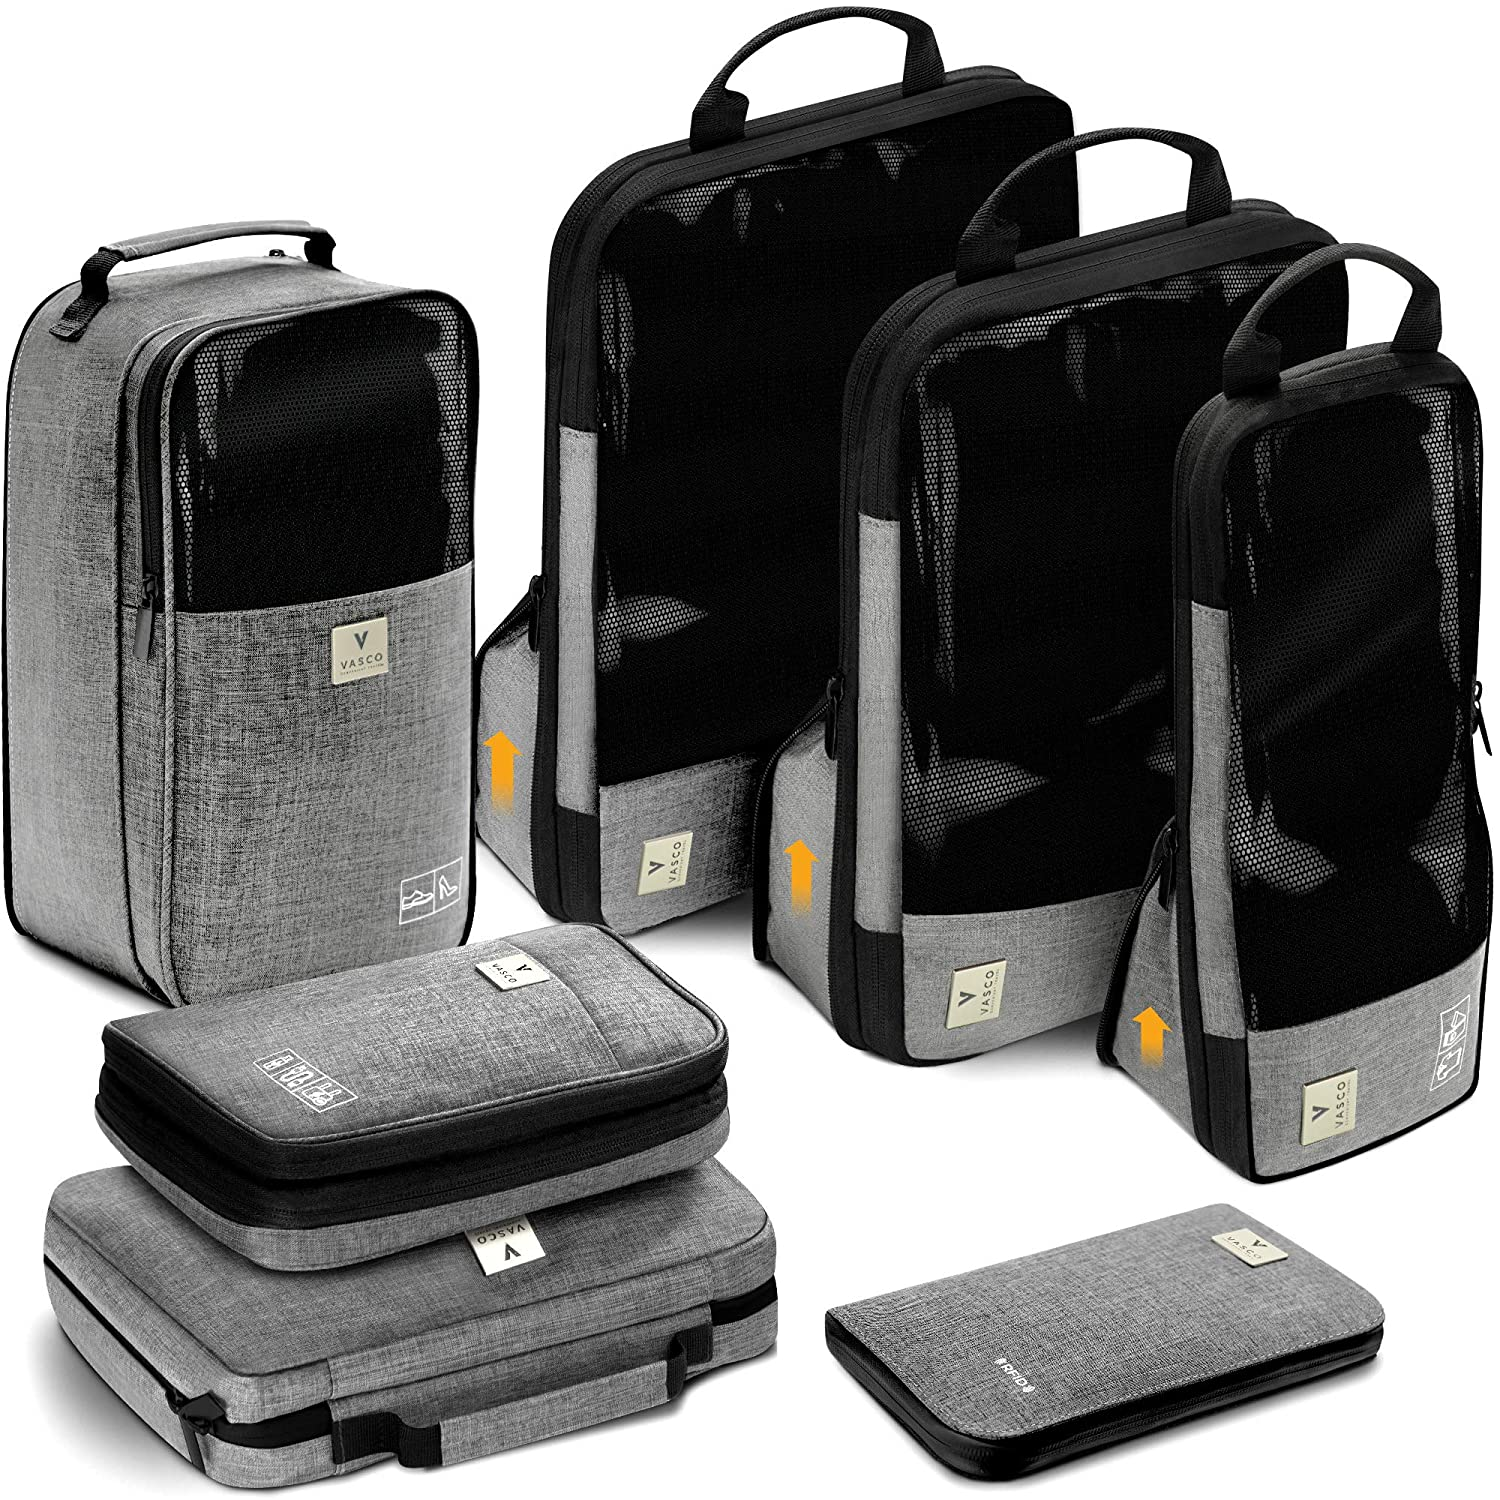 c73e412acd VASCO Travel Packing Cubes Set  Waterproof Travel Packing Organizer Set Of  3 Compression Cubes + Travel Shoes Bag + Hanging Toiletry Bag + Electronics  Cube ...